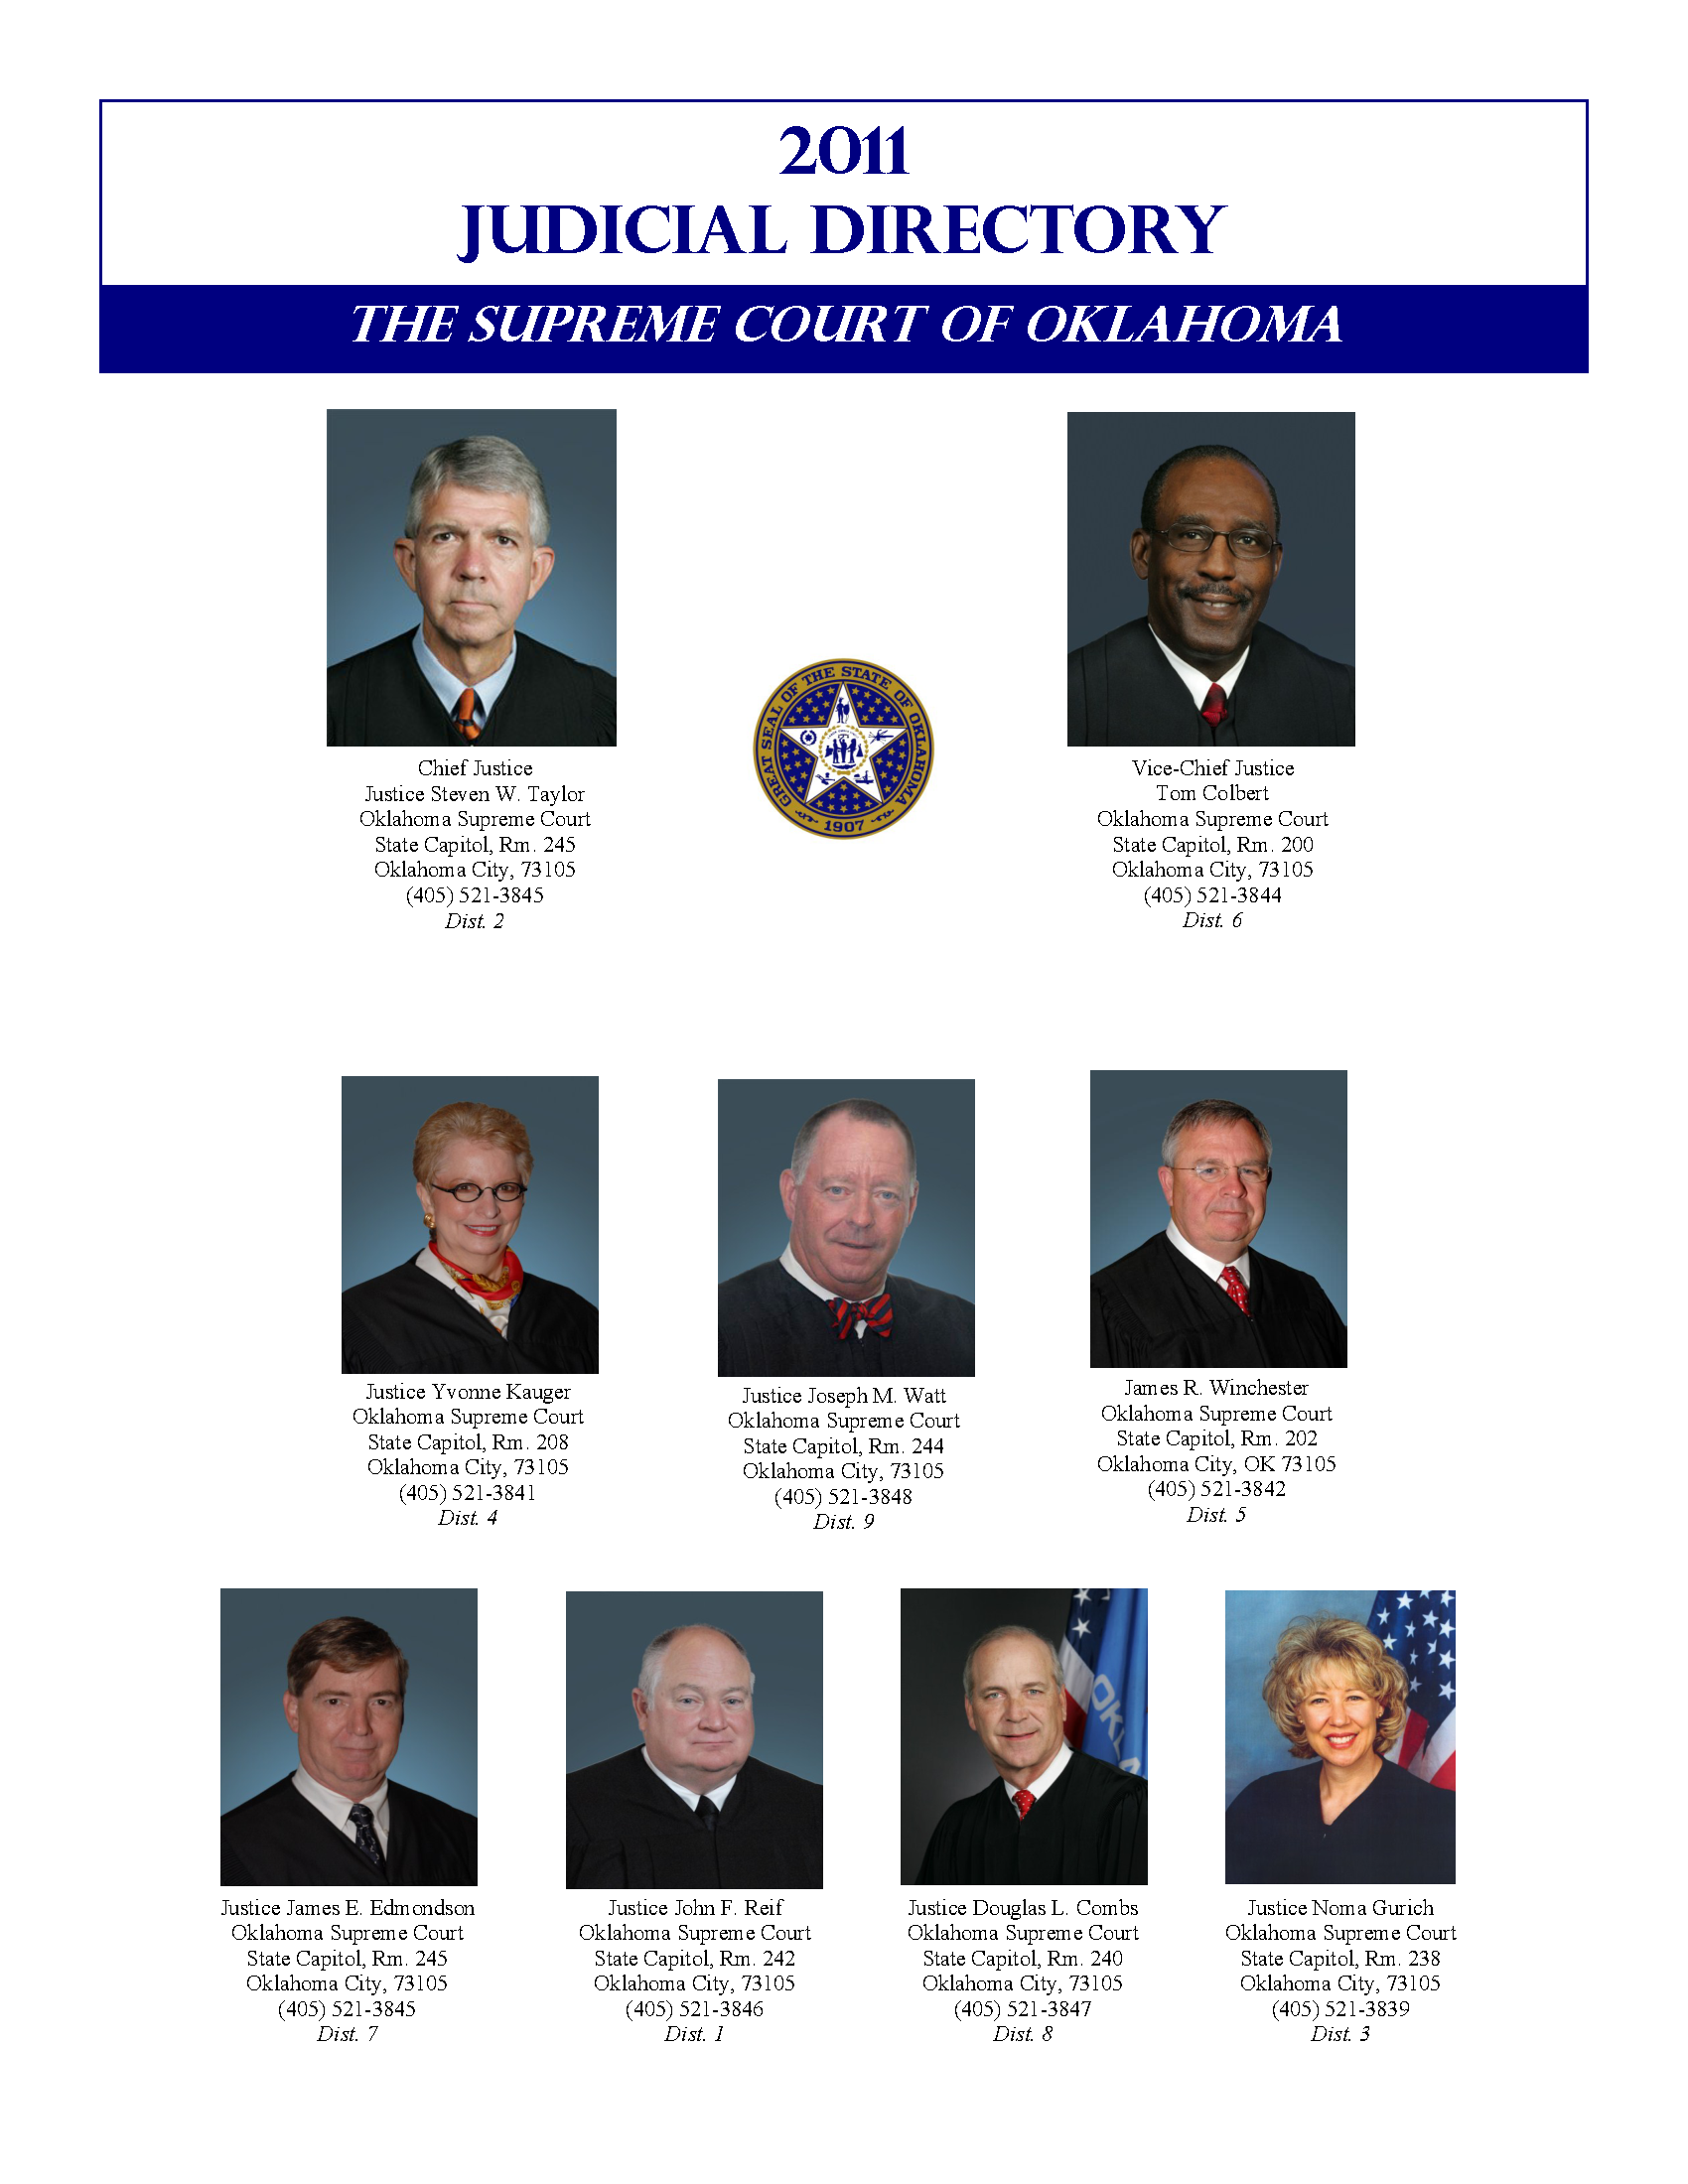 Judicial Directory 2011 - Documents OK Gov - Oklahoma